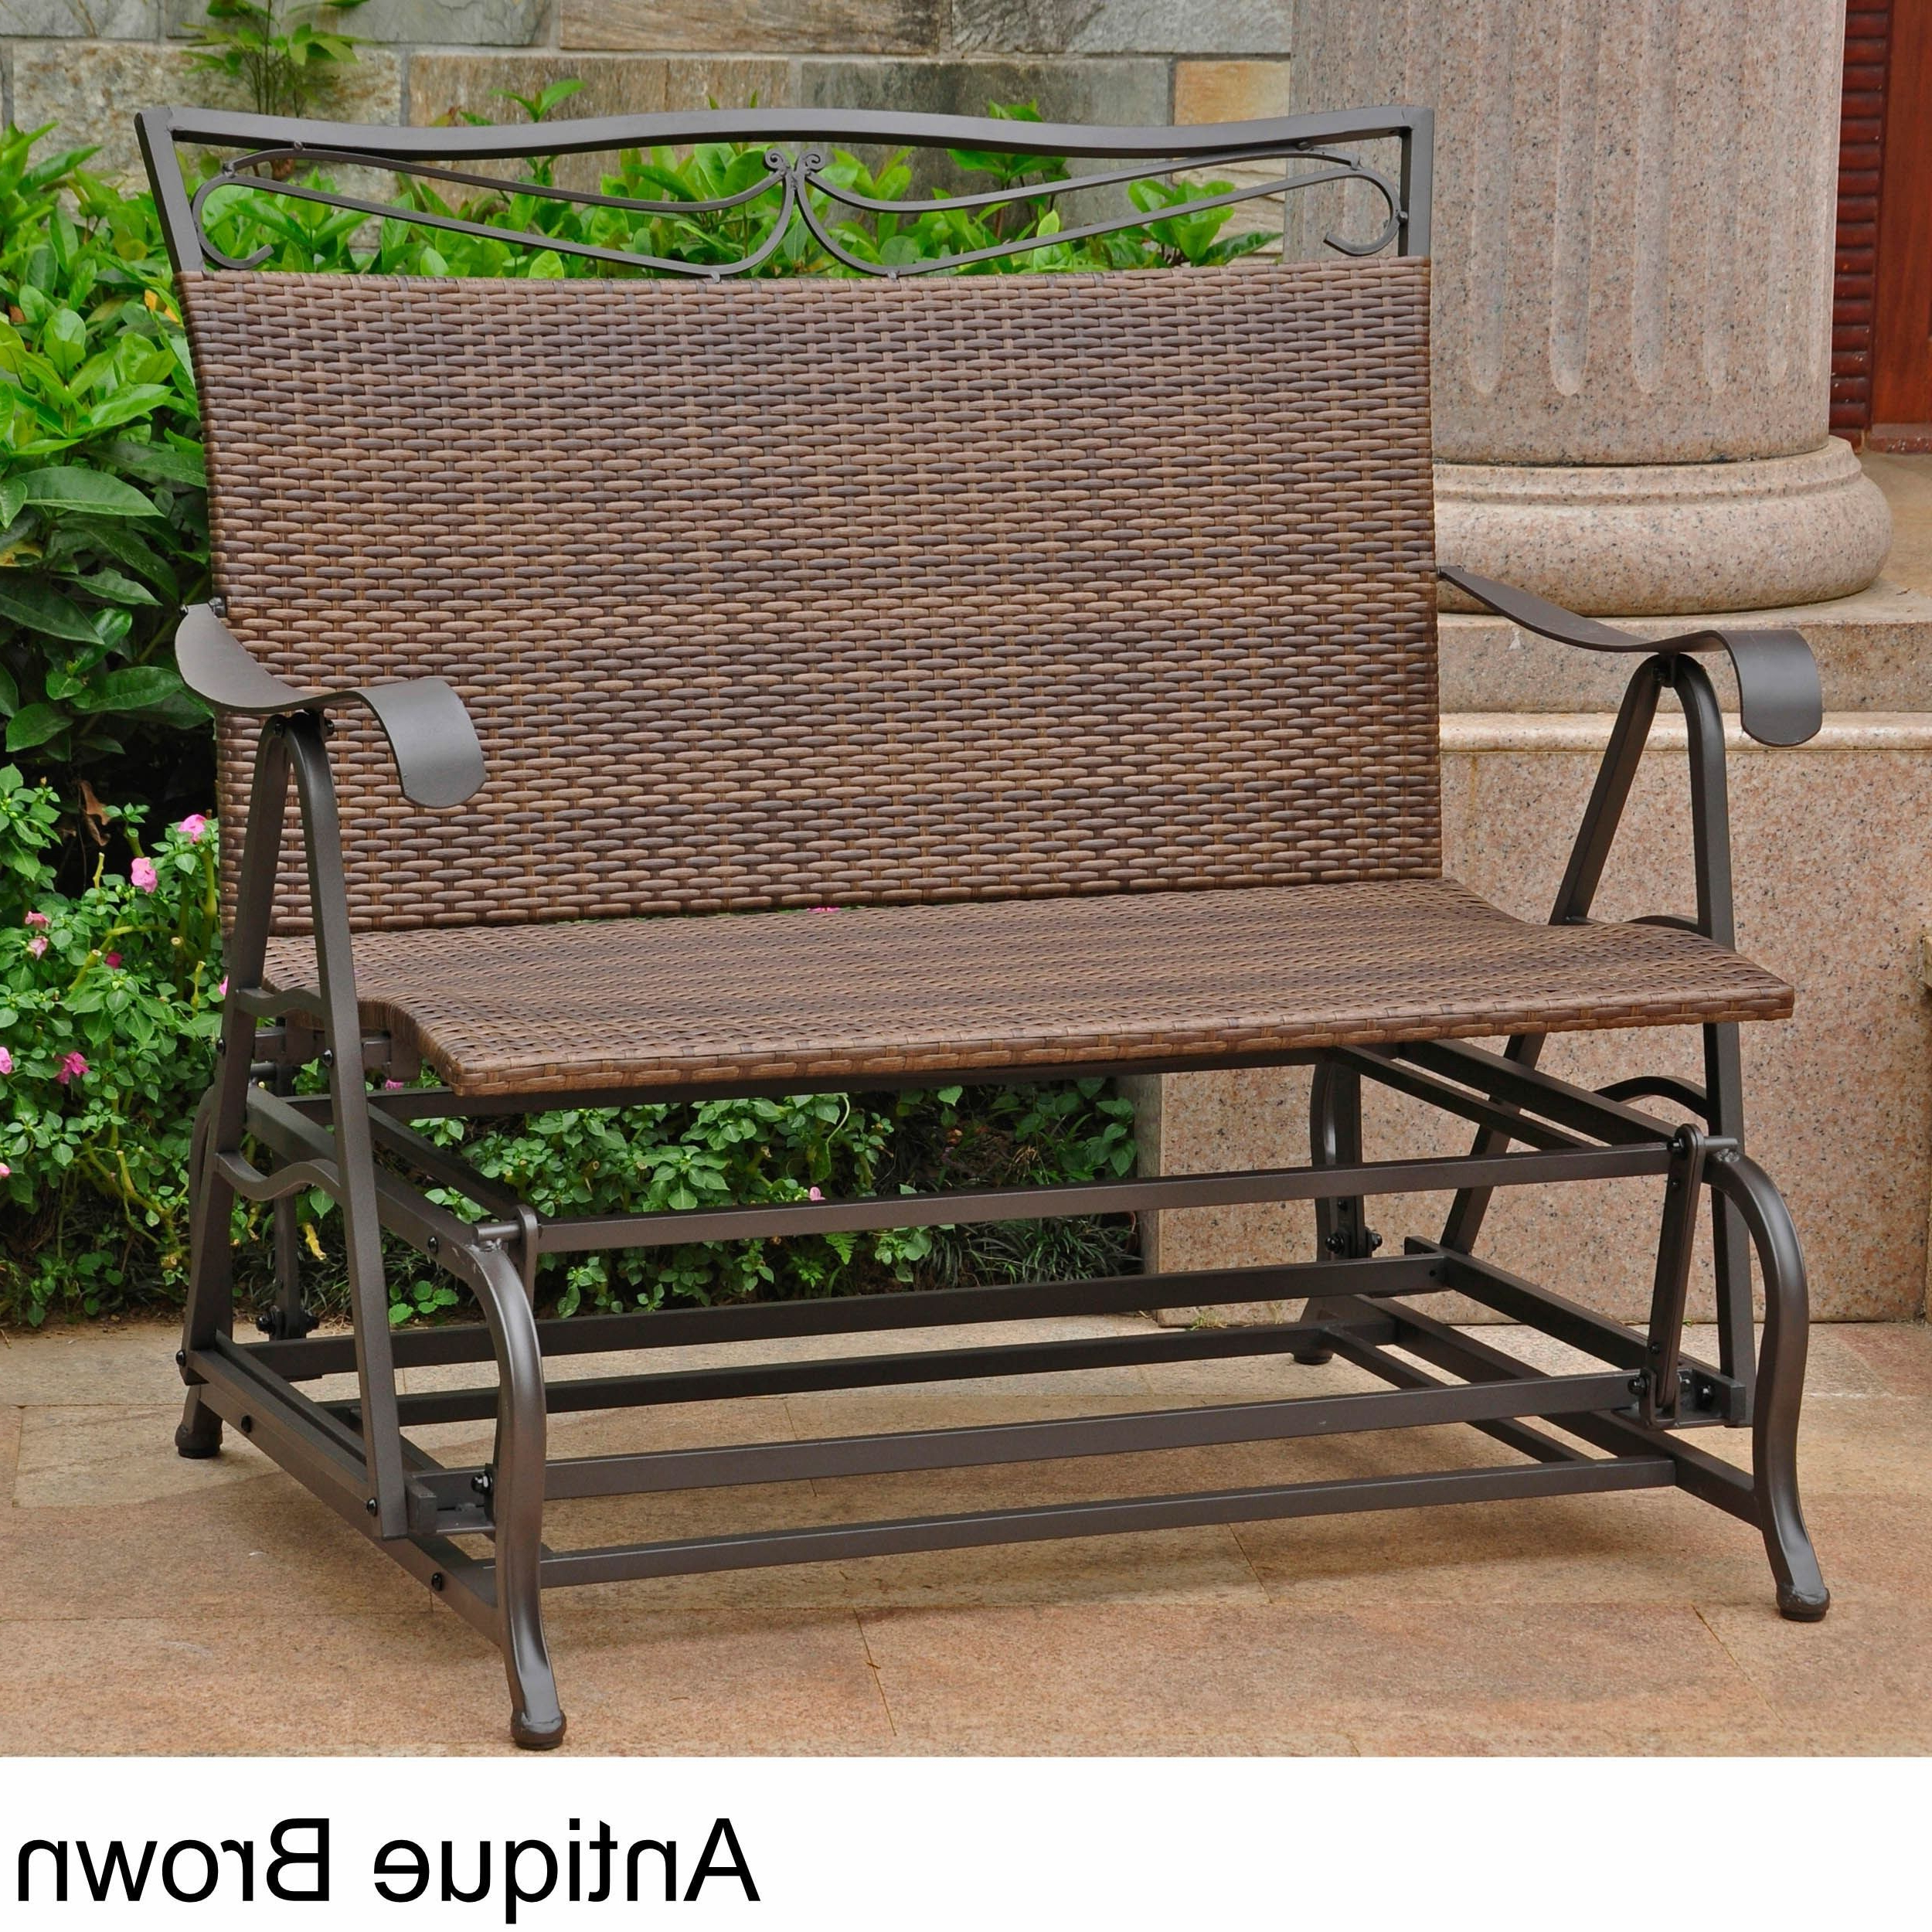 Widely Used International Caravan Valencia Resin Wicker/ Steel Frame Within Iron Double Patio Glider Benches (Gallery 8 of 30)